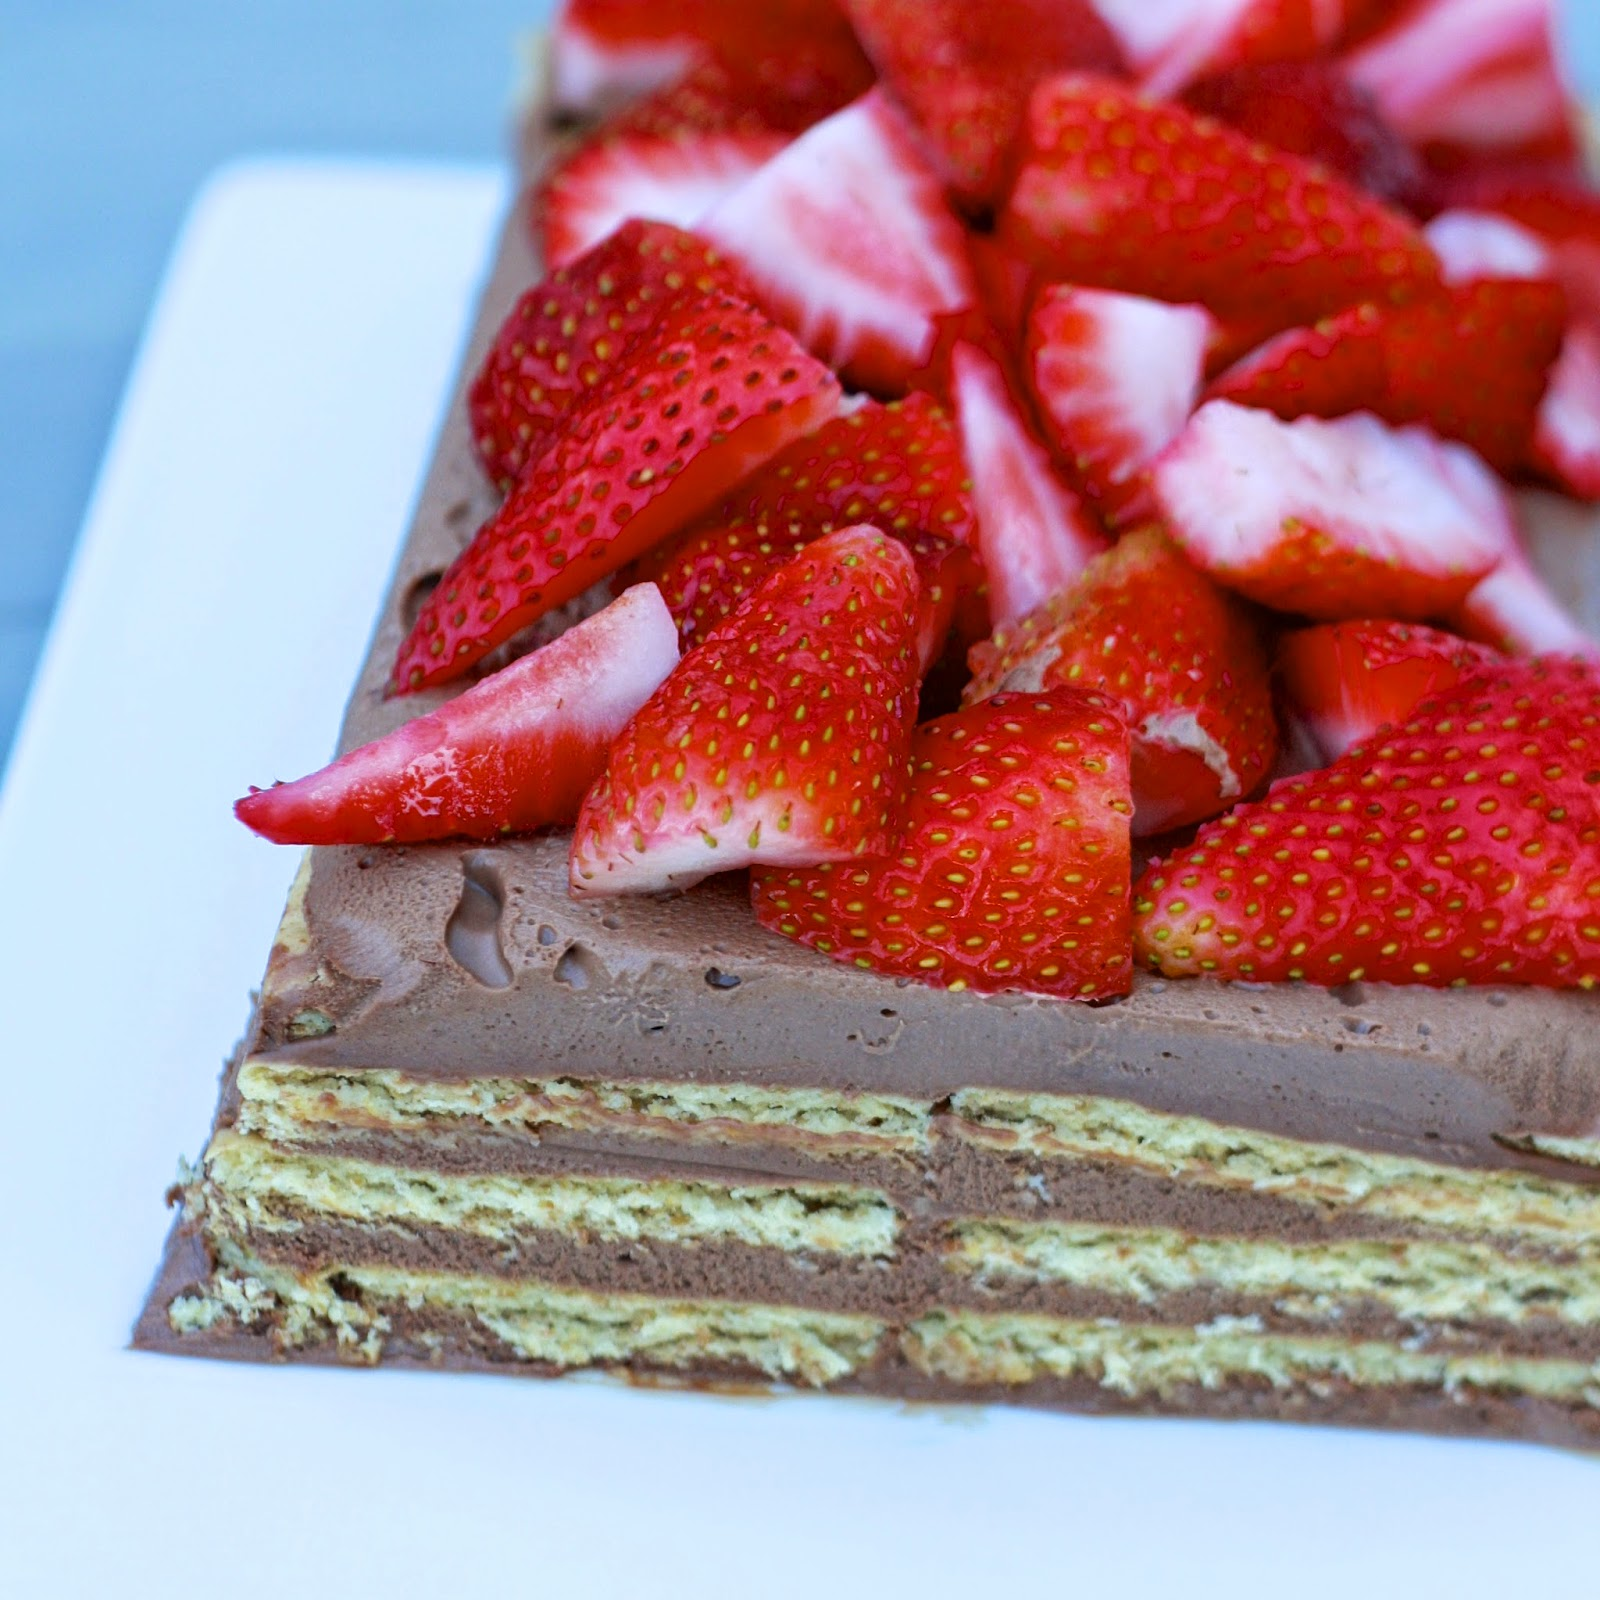 No Bake Chocolate Layered Cheesecake with Strawberries | The Sweets Life